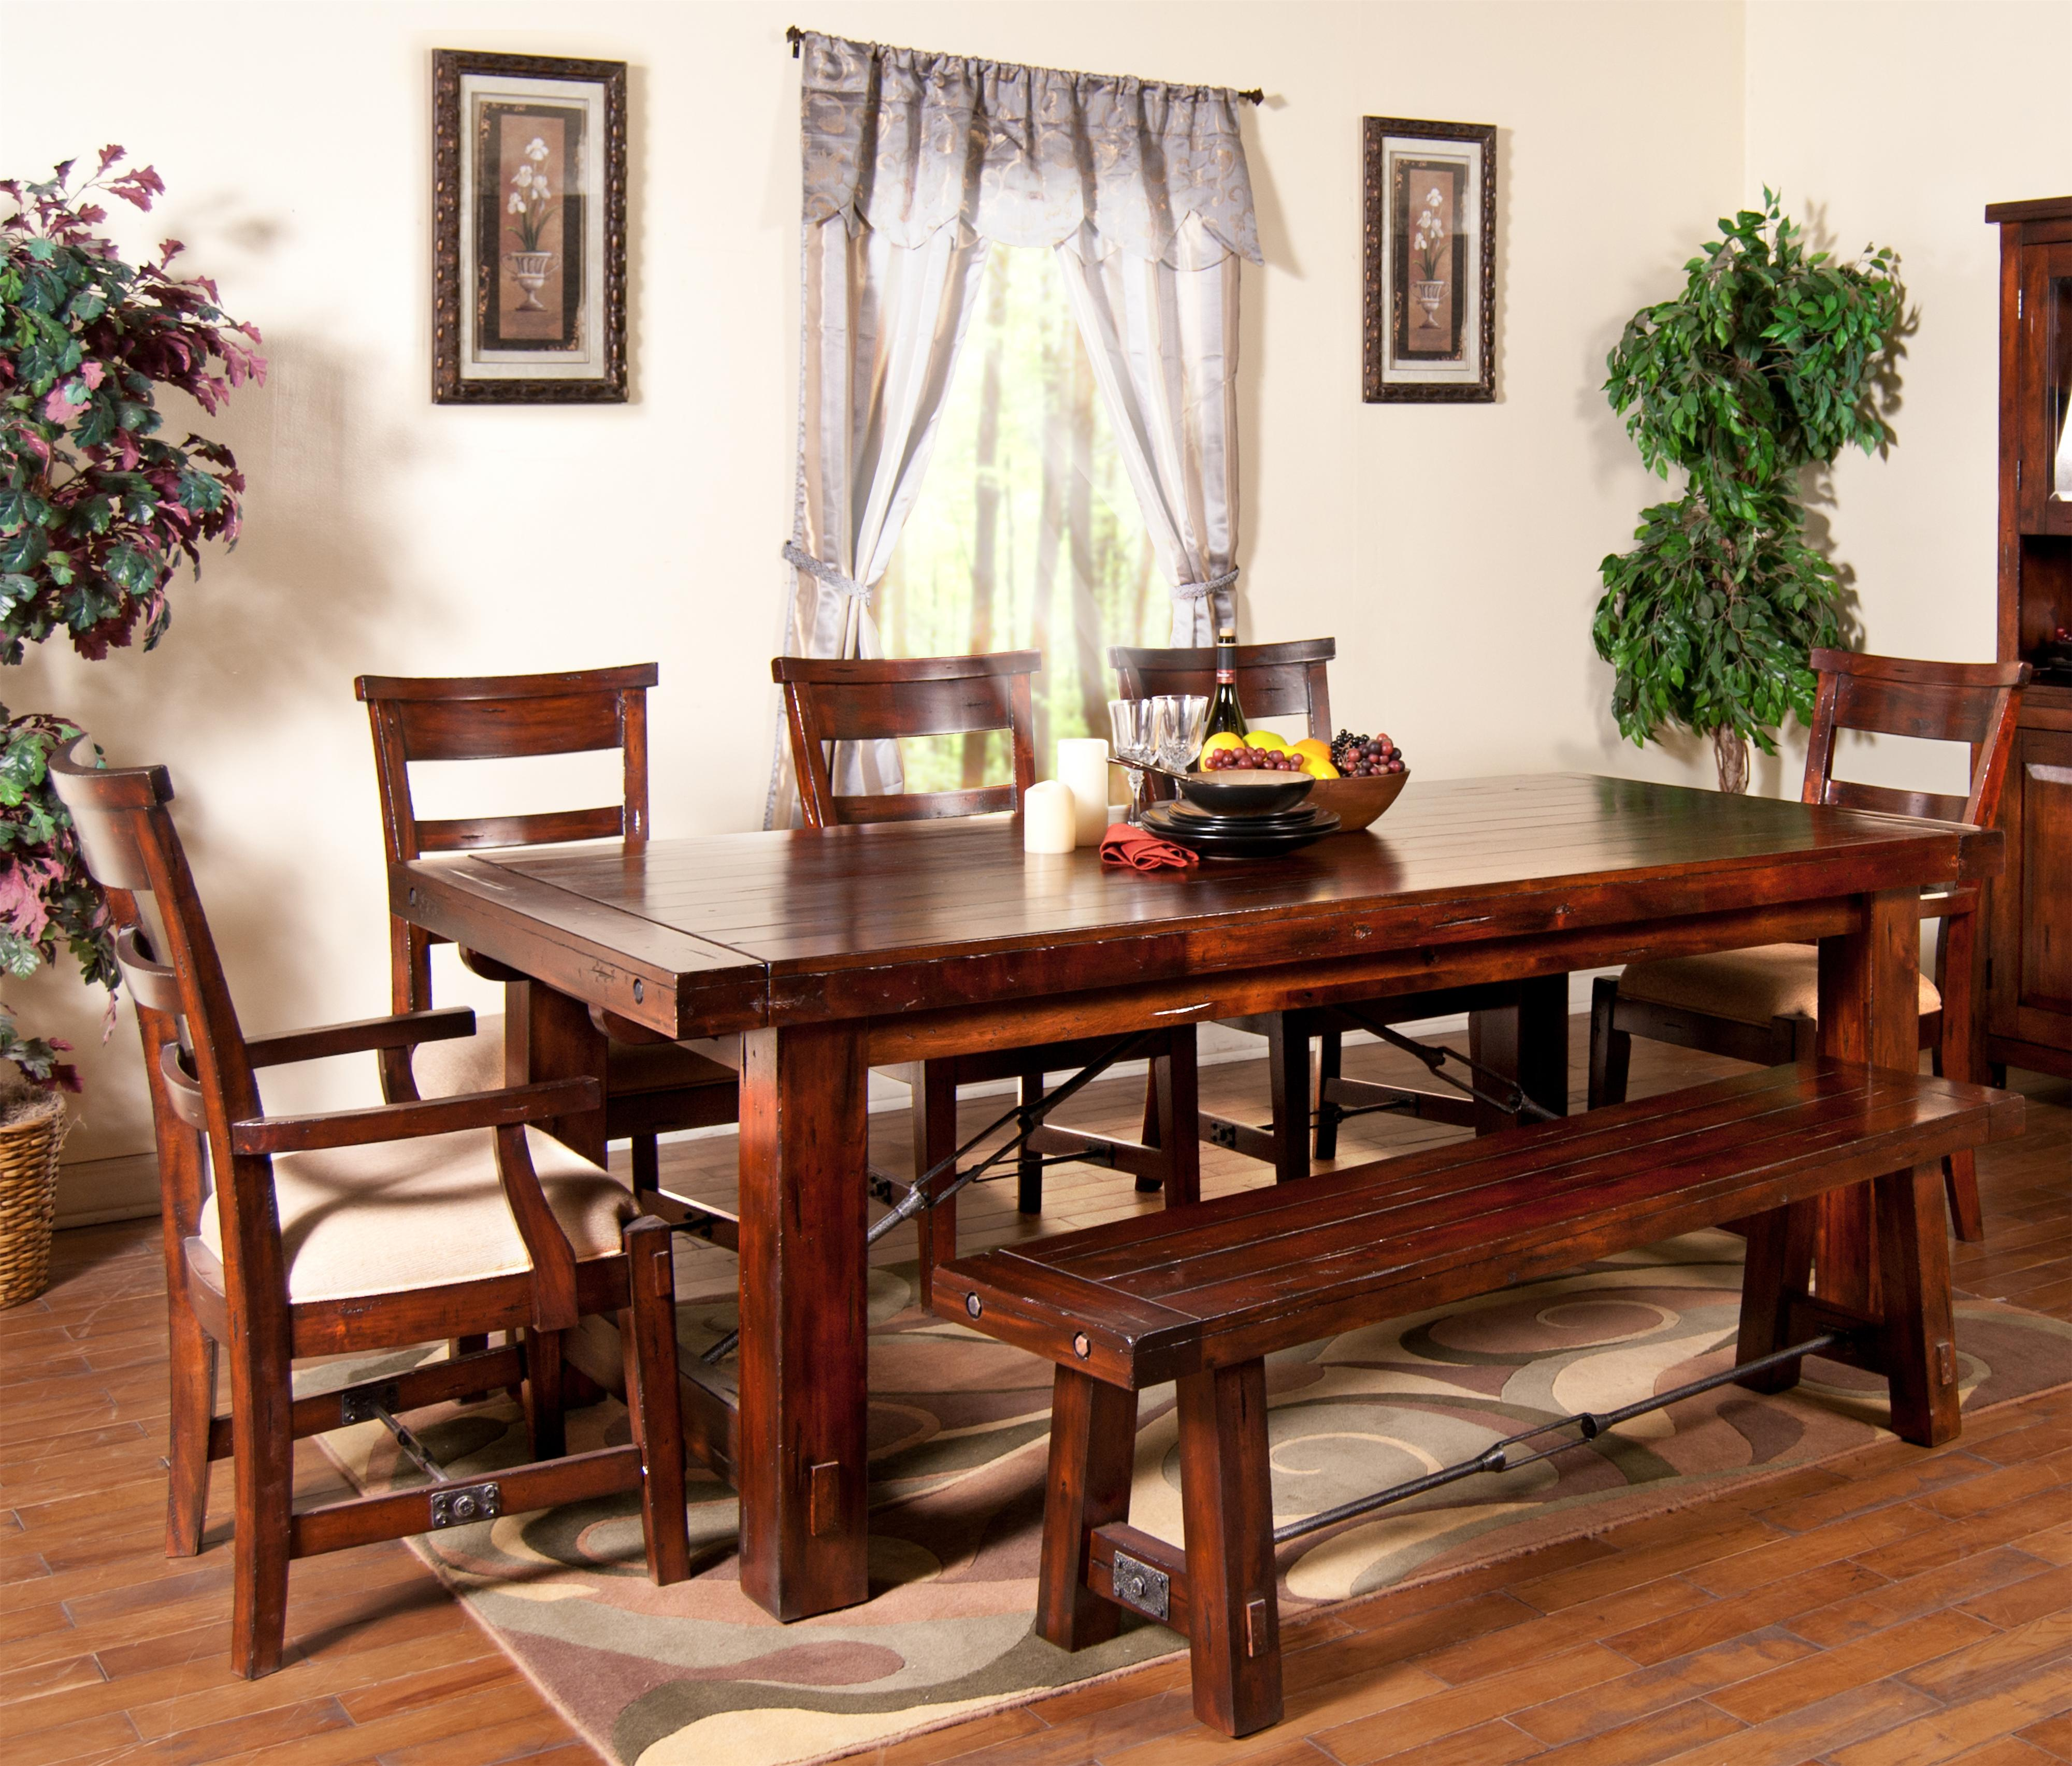 7 piece extension table with chairs and bench set by sunny Kitchen table in living room